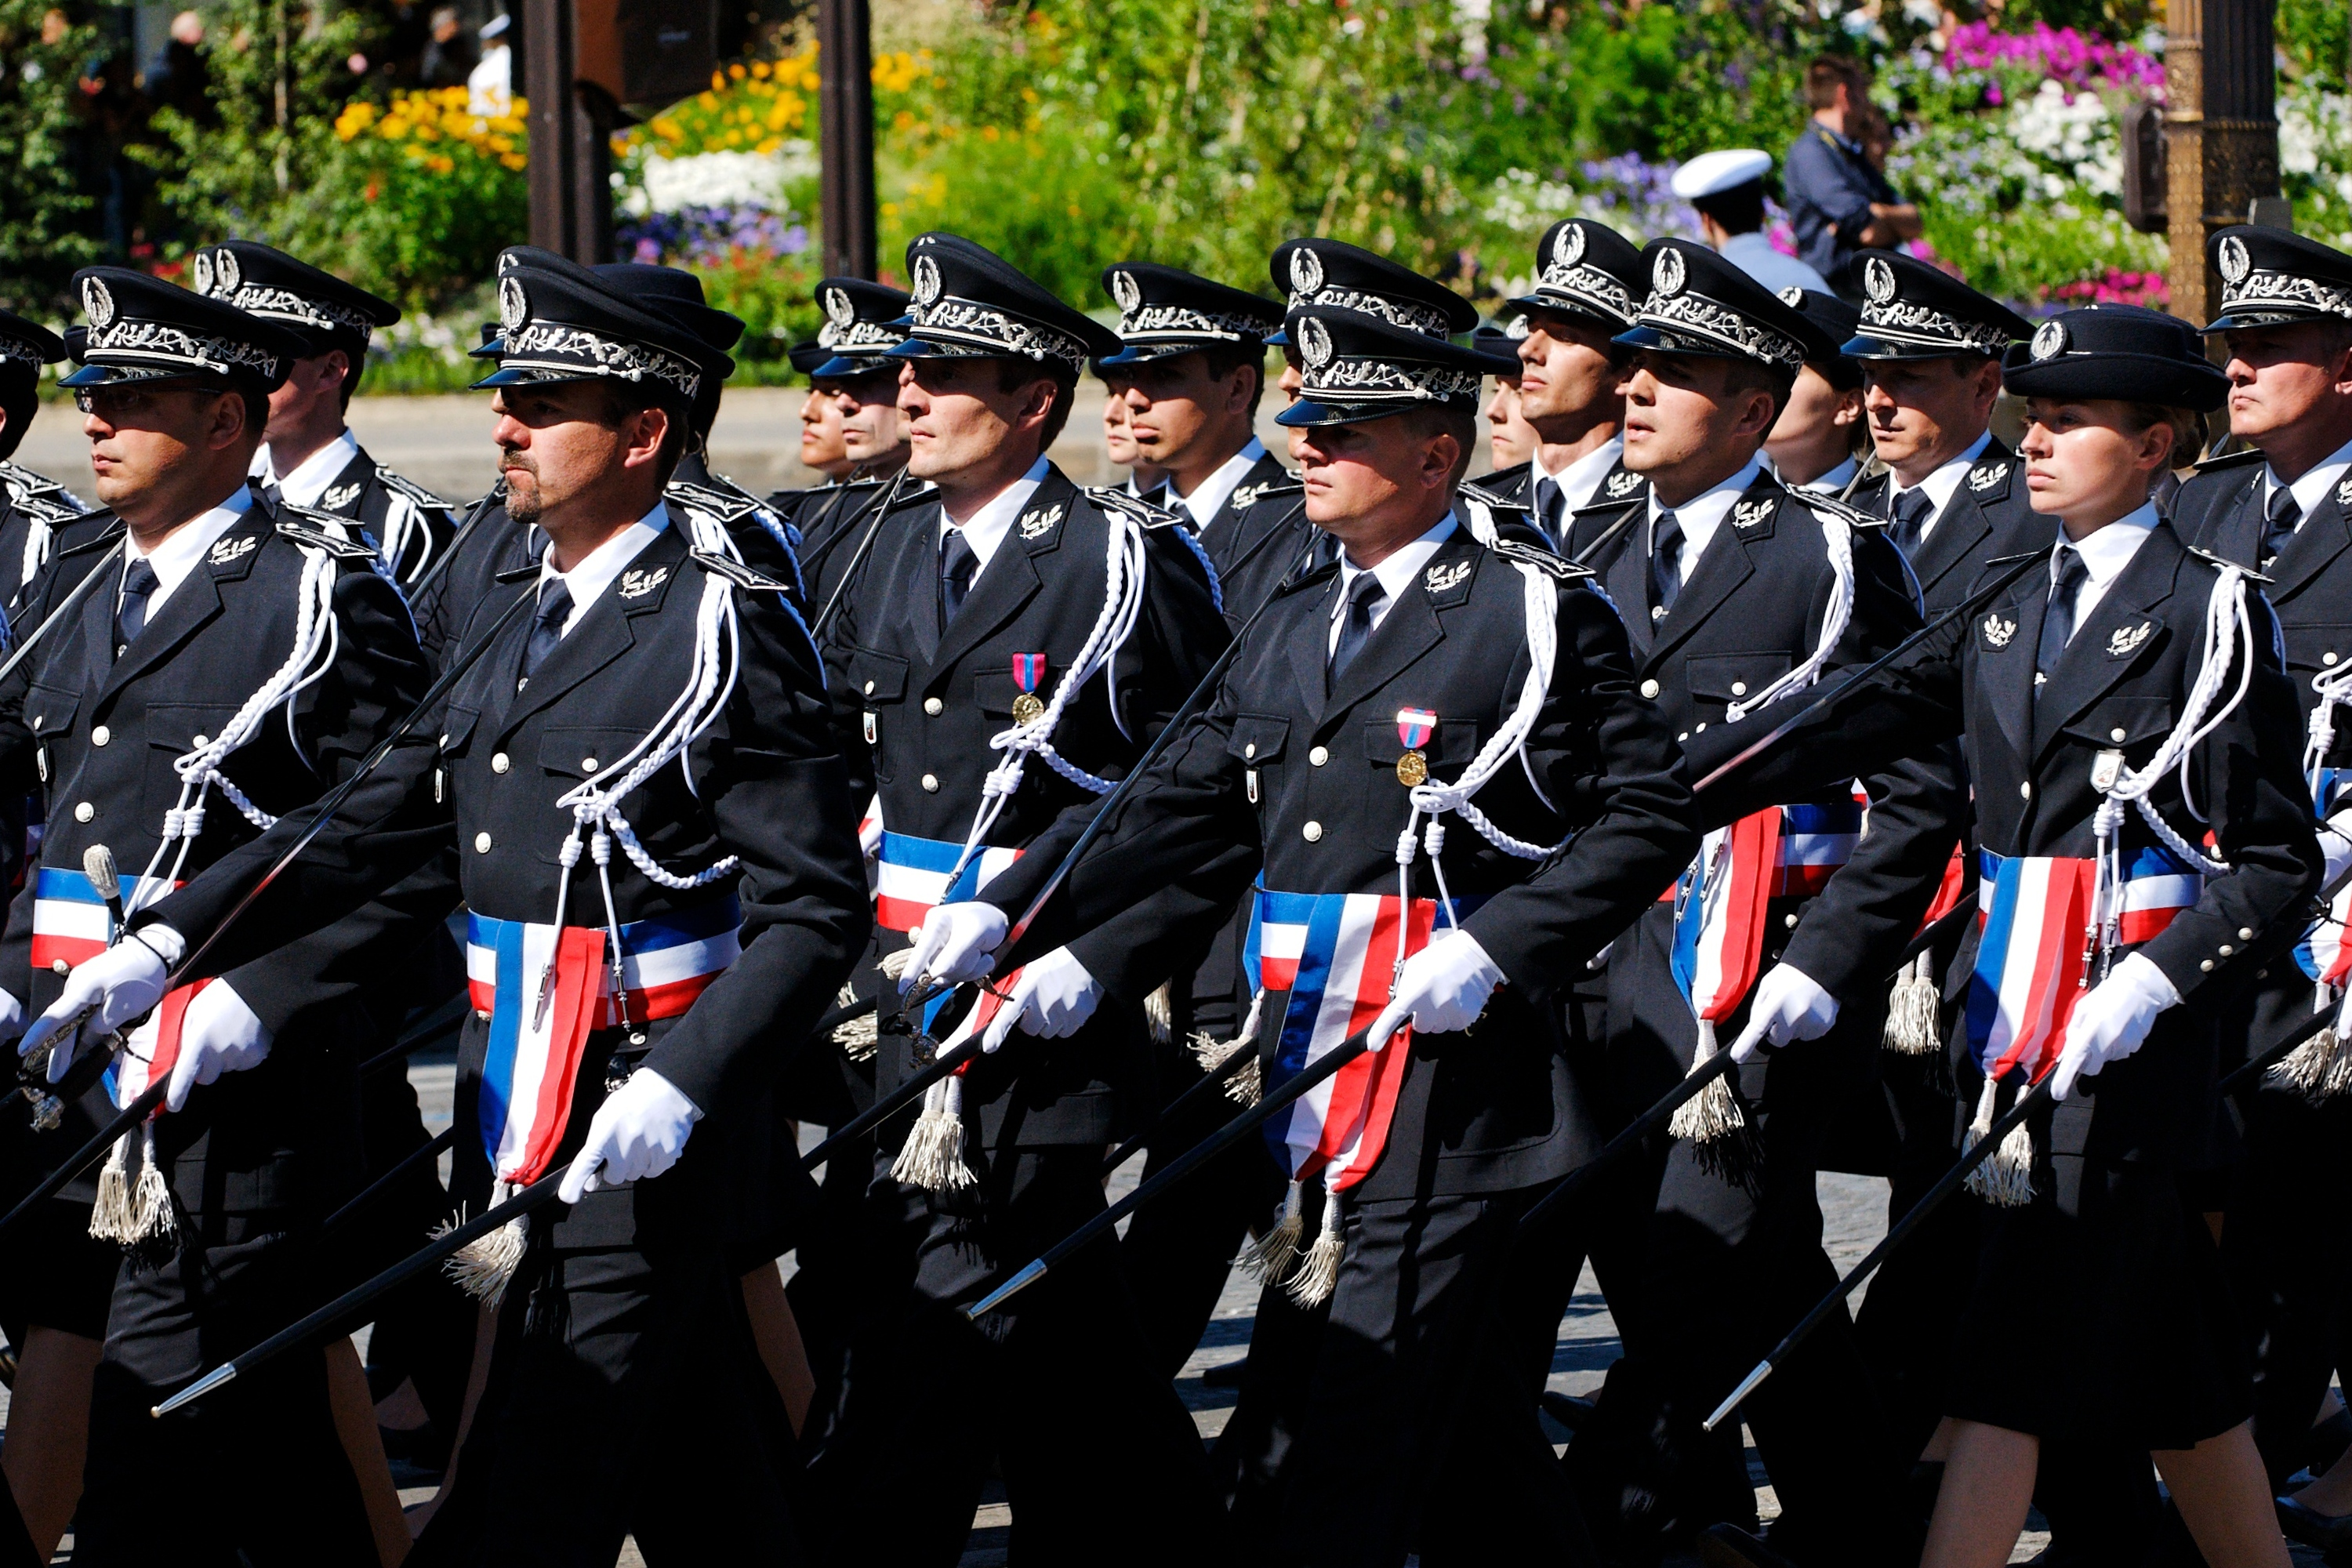 http://upload.wikimedia.org/wikipedia/commons/1/1f/ENSP_trainees_Bastille_Day_2008.jpeg